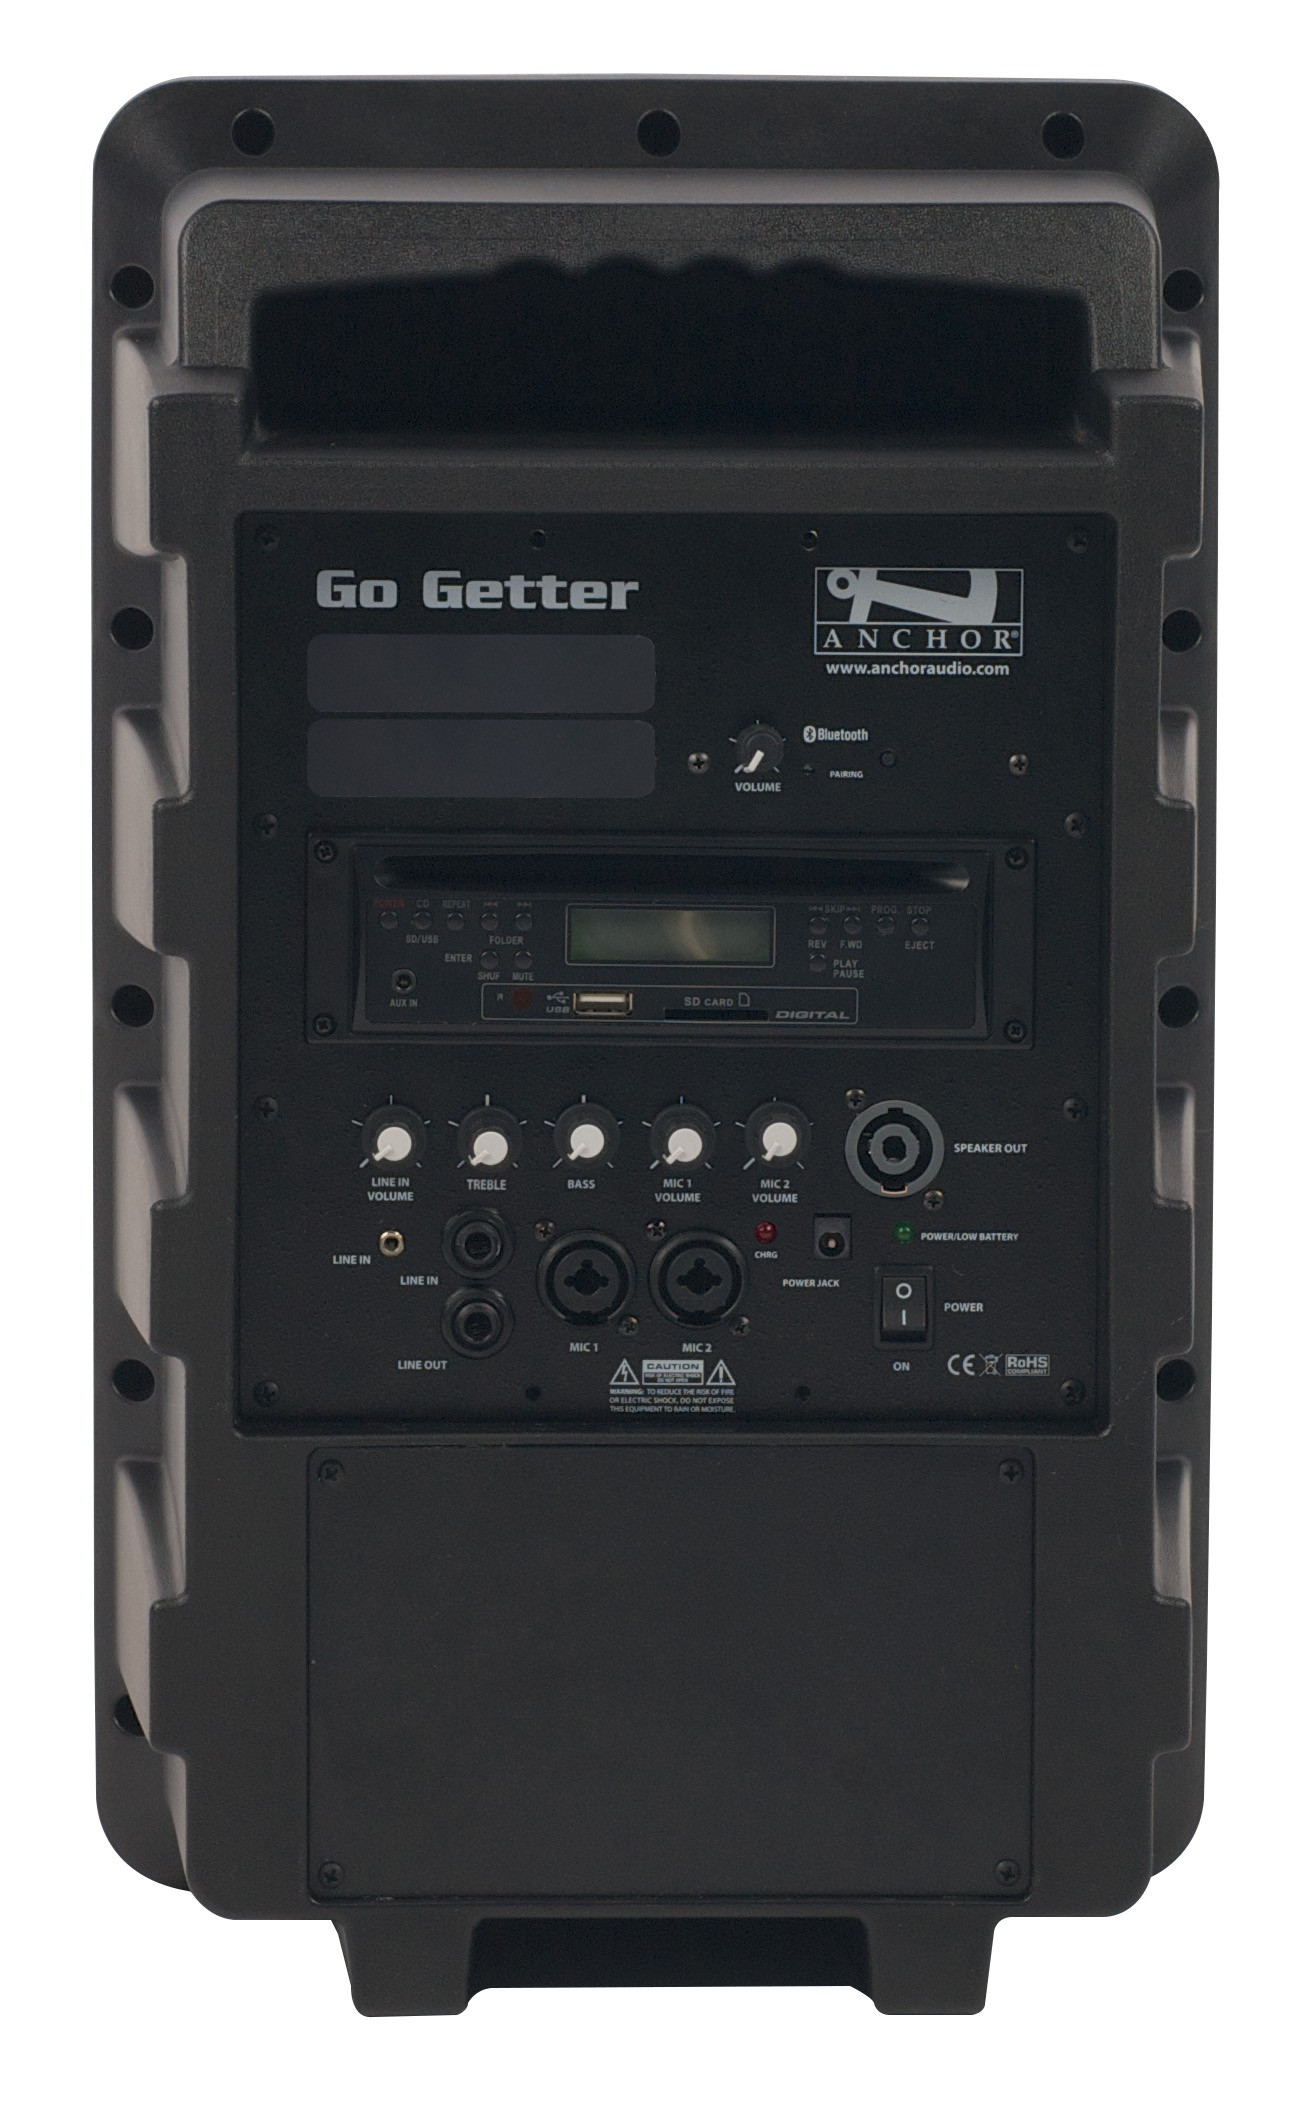 Anchor Audio GG-8000C Go Getter with Bluetooth & CD/MP3 combo player